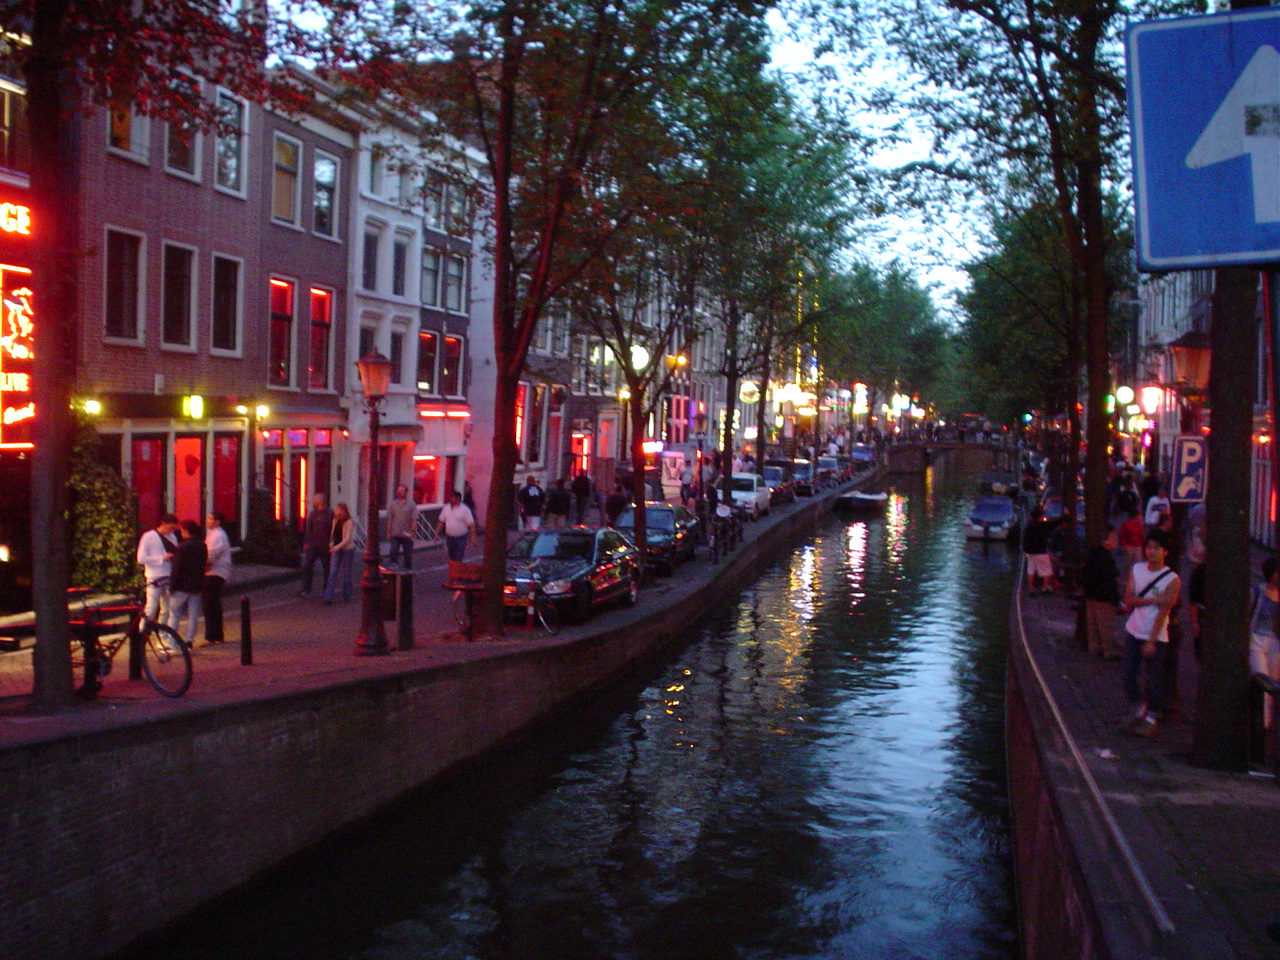 The famed Amsterdam red light district.